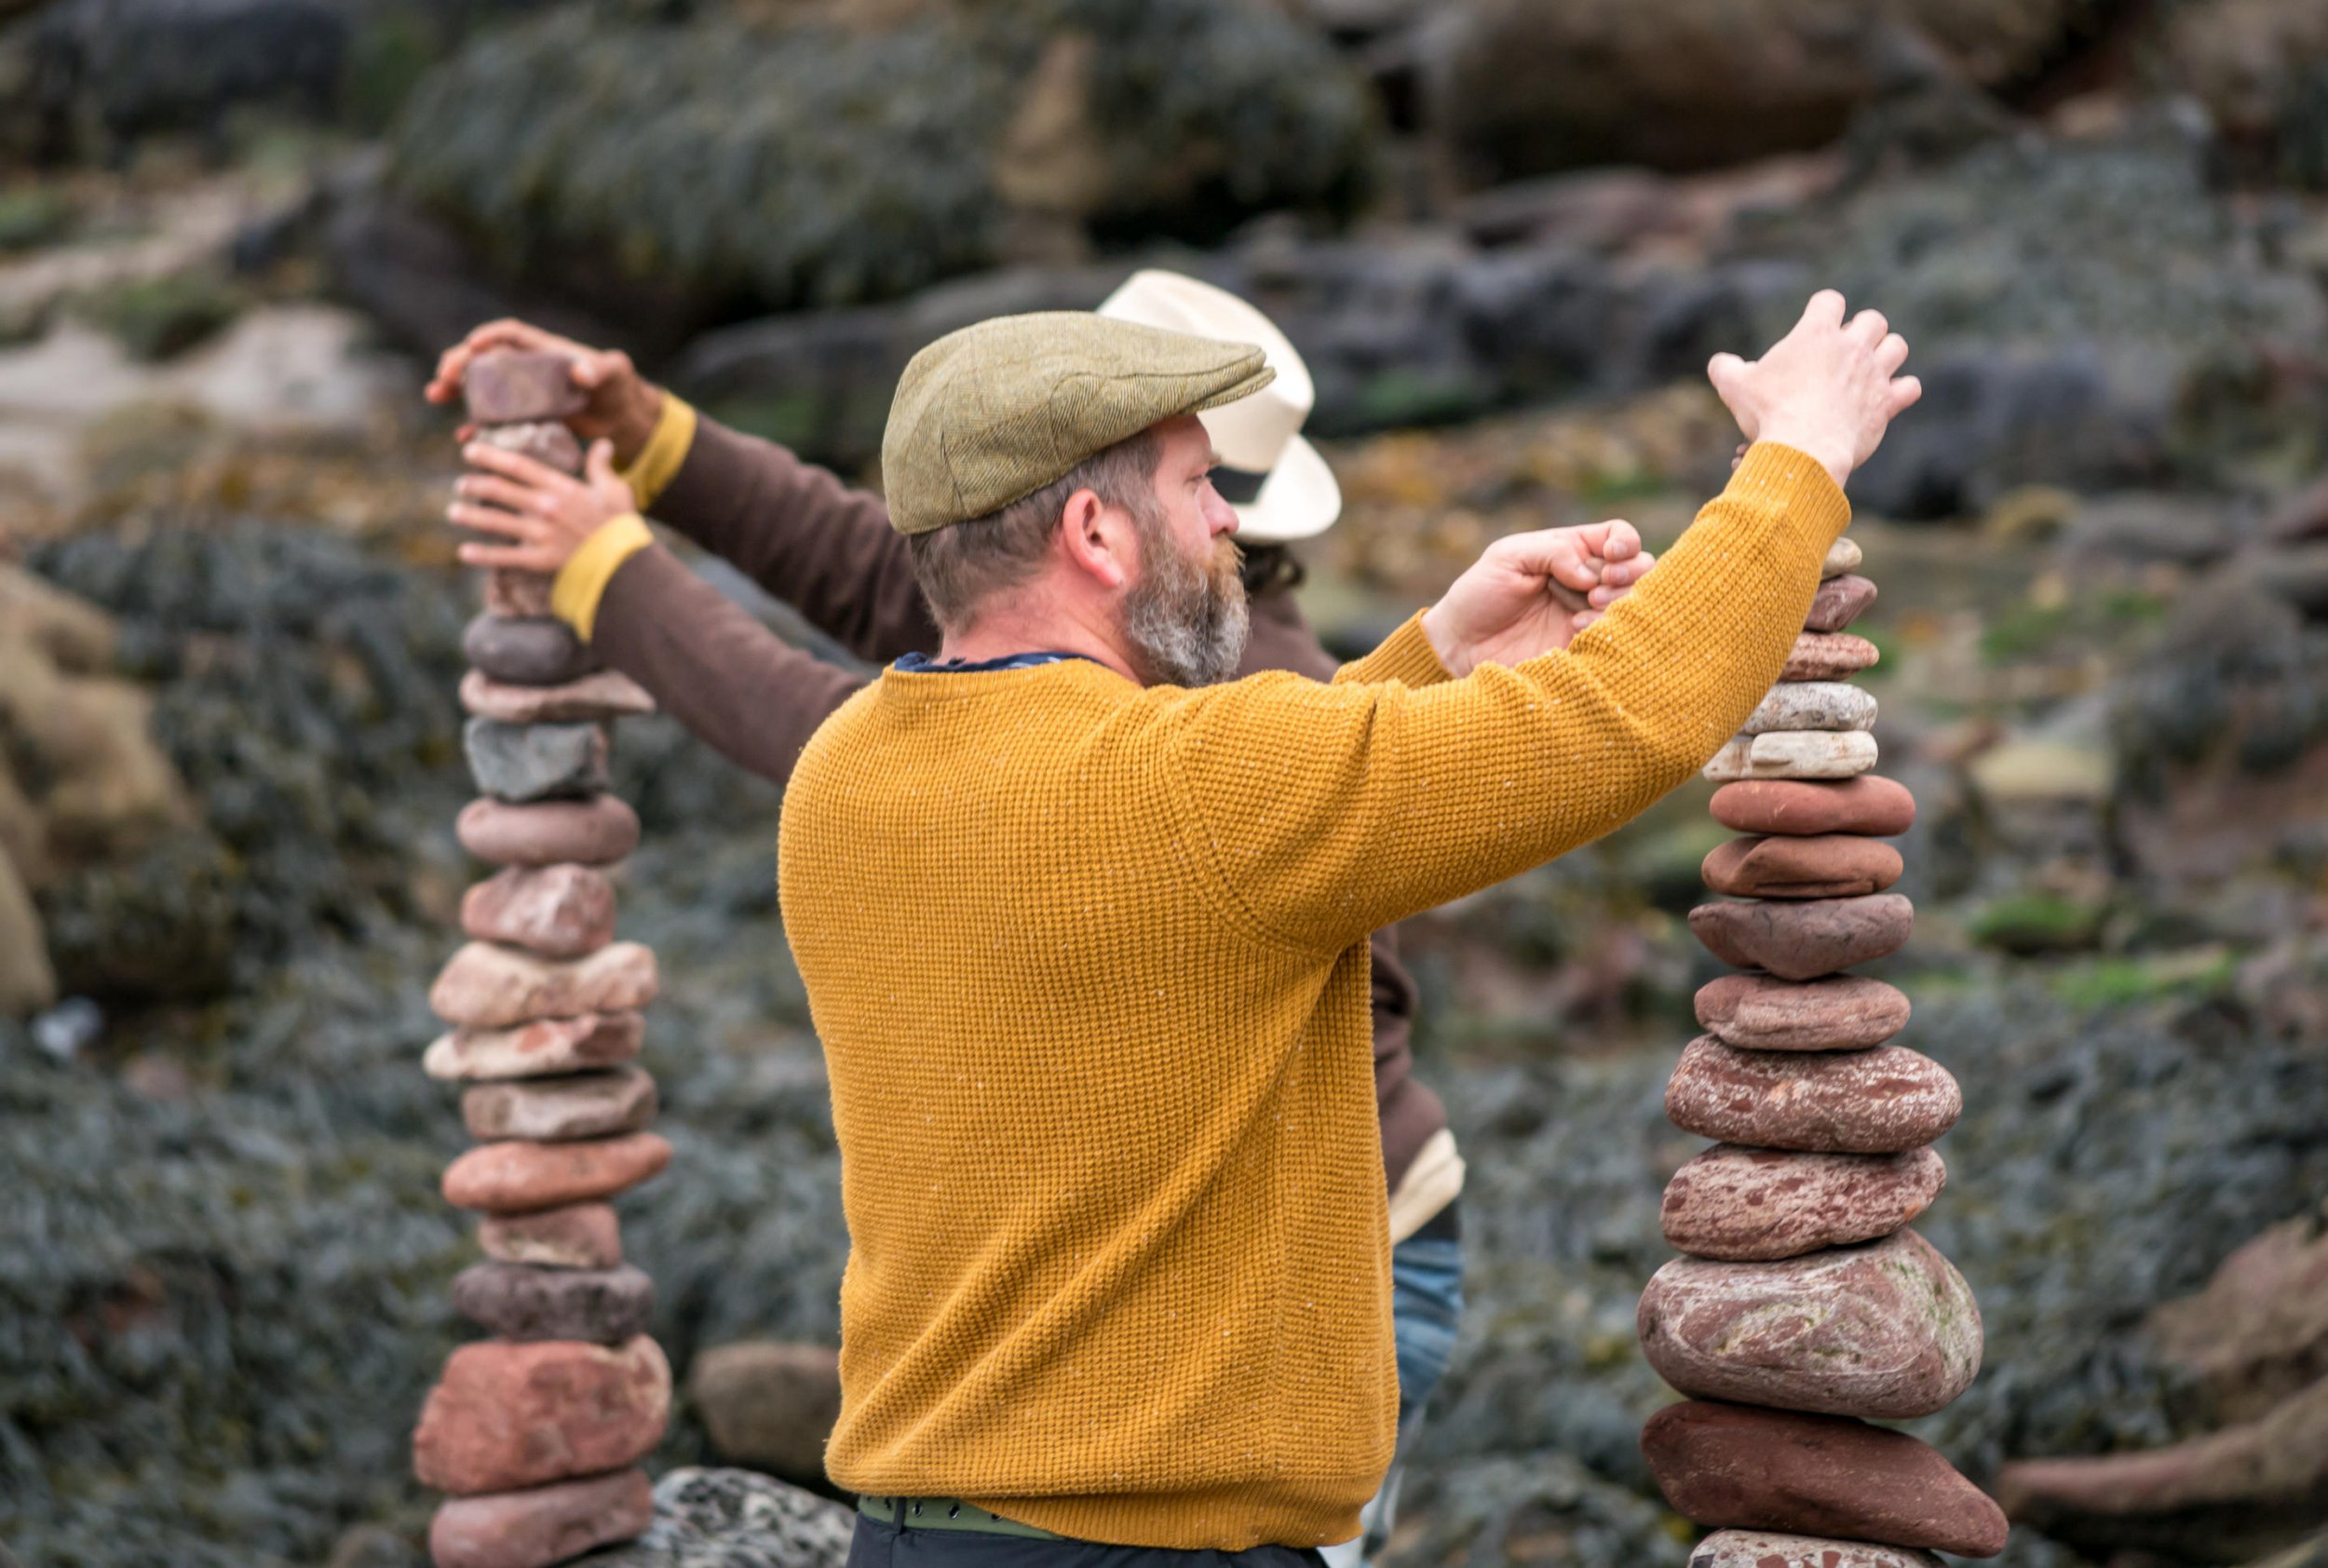 Alamy Live News. ME8HPR Dunbar, Scotland, 22 April 2018. Eye Cave Beach, Dunbar, East Lothian, Scotland, United Kingdom, 22nd April 2018. The second day of the Second European stone stacking competition took place this weekend in Dunbar, organised by Dunbar Street Art Trial. Competitors came from Scotland, UK, France, Austria, USA and Spain. The first competiton of the day was to balance the most number of stones. The winner balanced 29 stones, slightly less than last year's winning 32 stones. Credit: Sally Anderson/Alamy Live News This is an Alamy Live News image and may not be part of your current Alamy deal . If you are unsure, please contact our sales team to check.